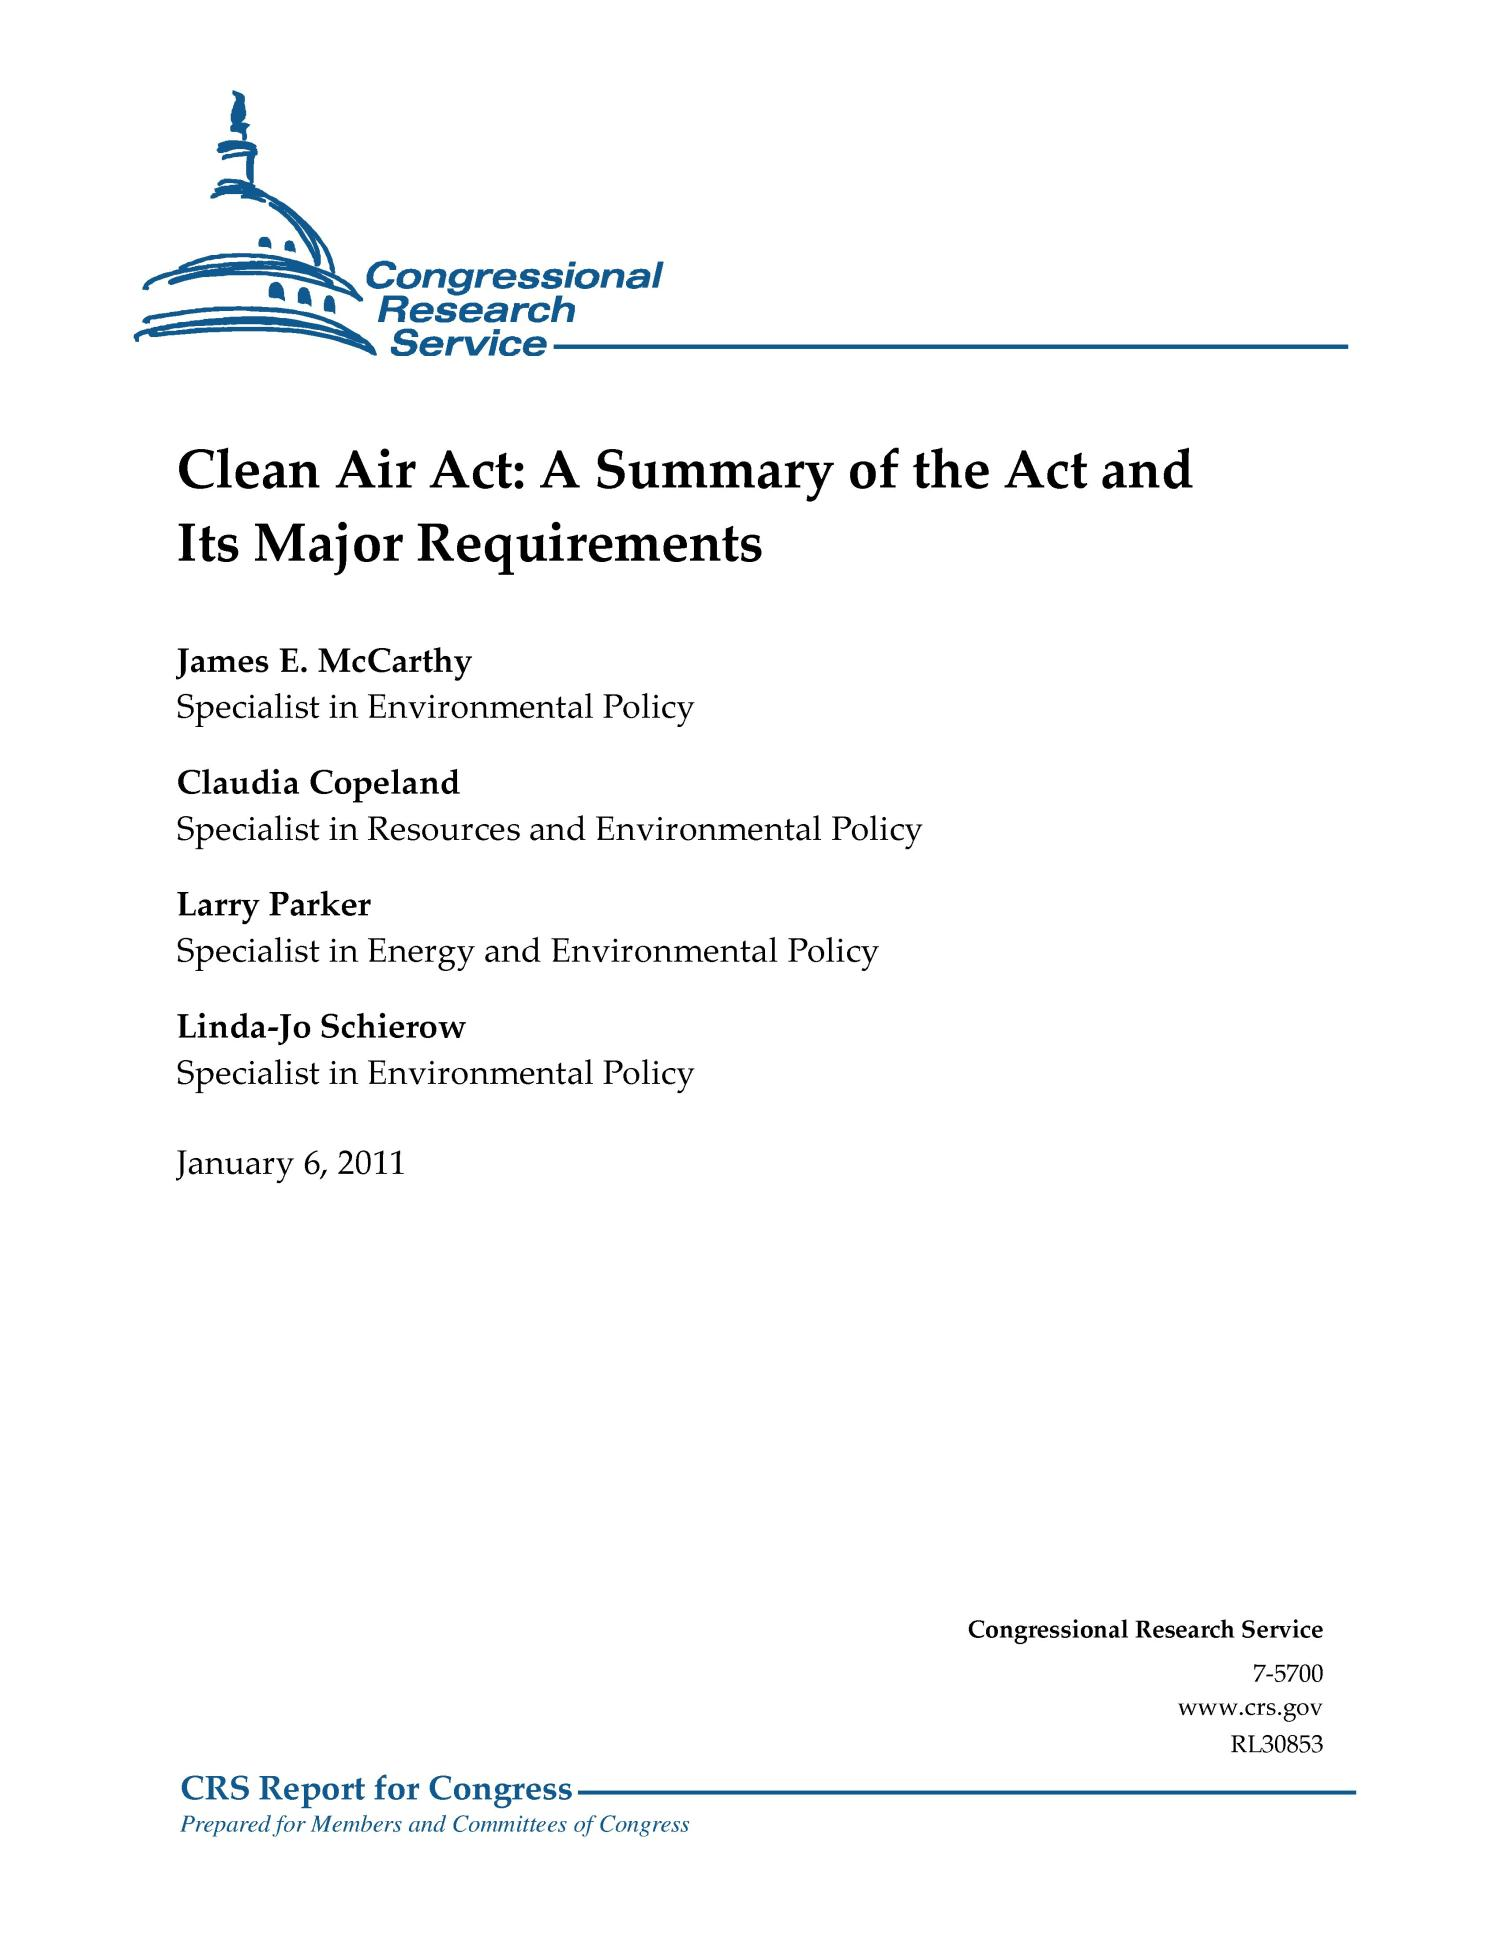 Clean Air Act: A Summary of the Act and Its Major Requirements                                                                                                      [Sequence #]: 1 of 27